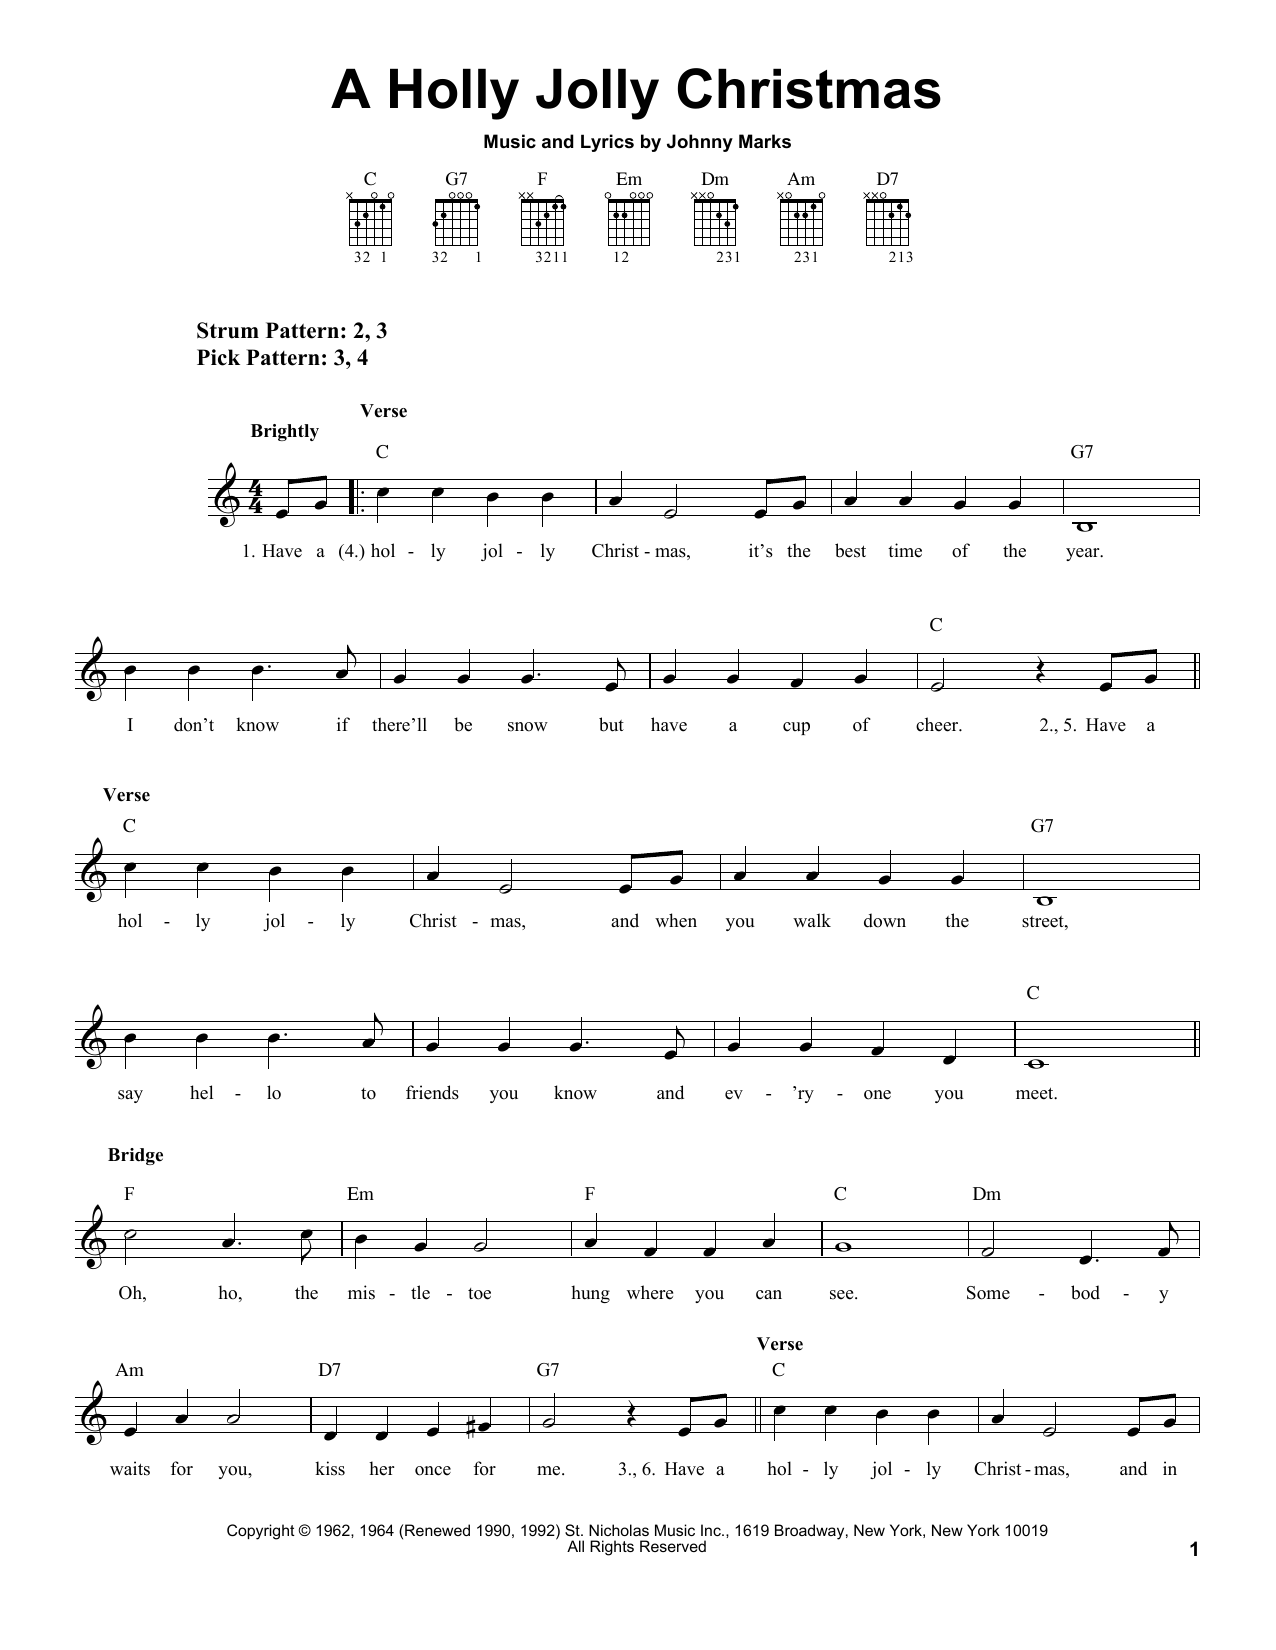 A Holly Jolly Christmas - Print Sheet Music Now